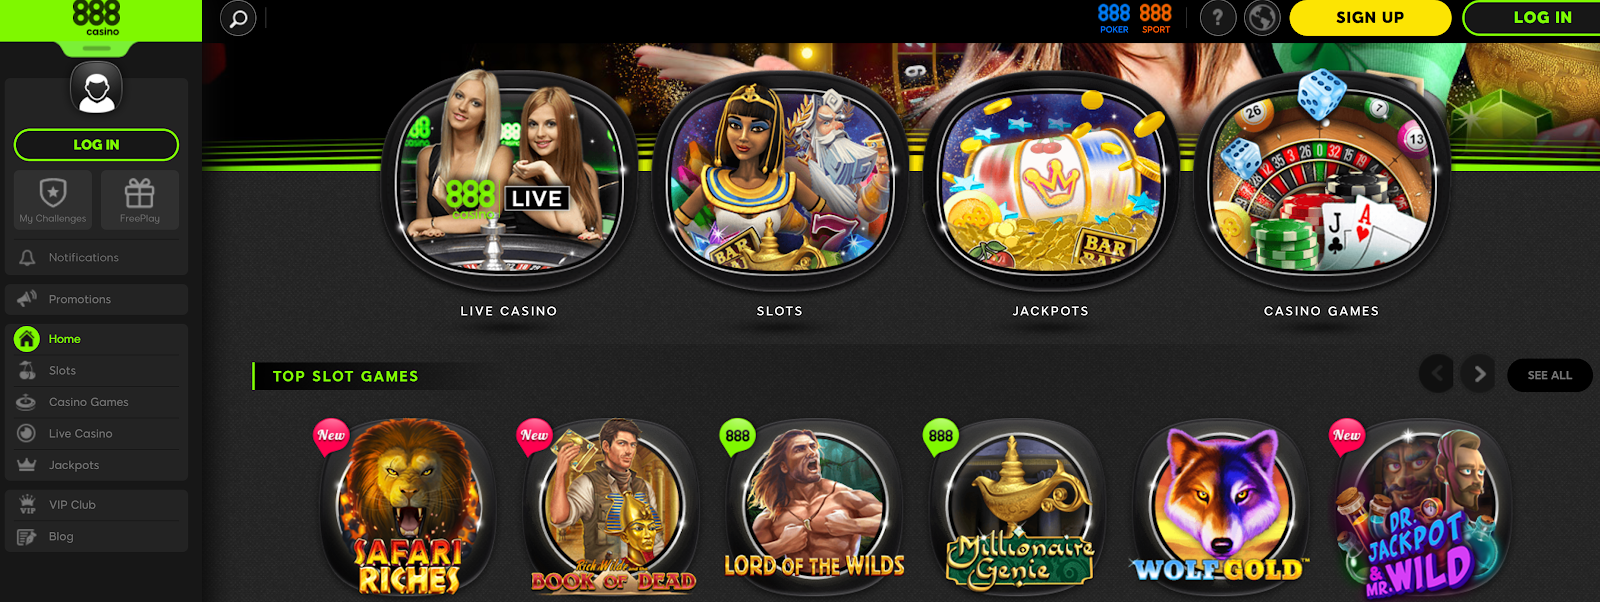 888 Casino is one of the best 200% deposit bonus casinos